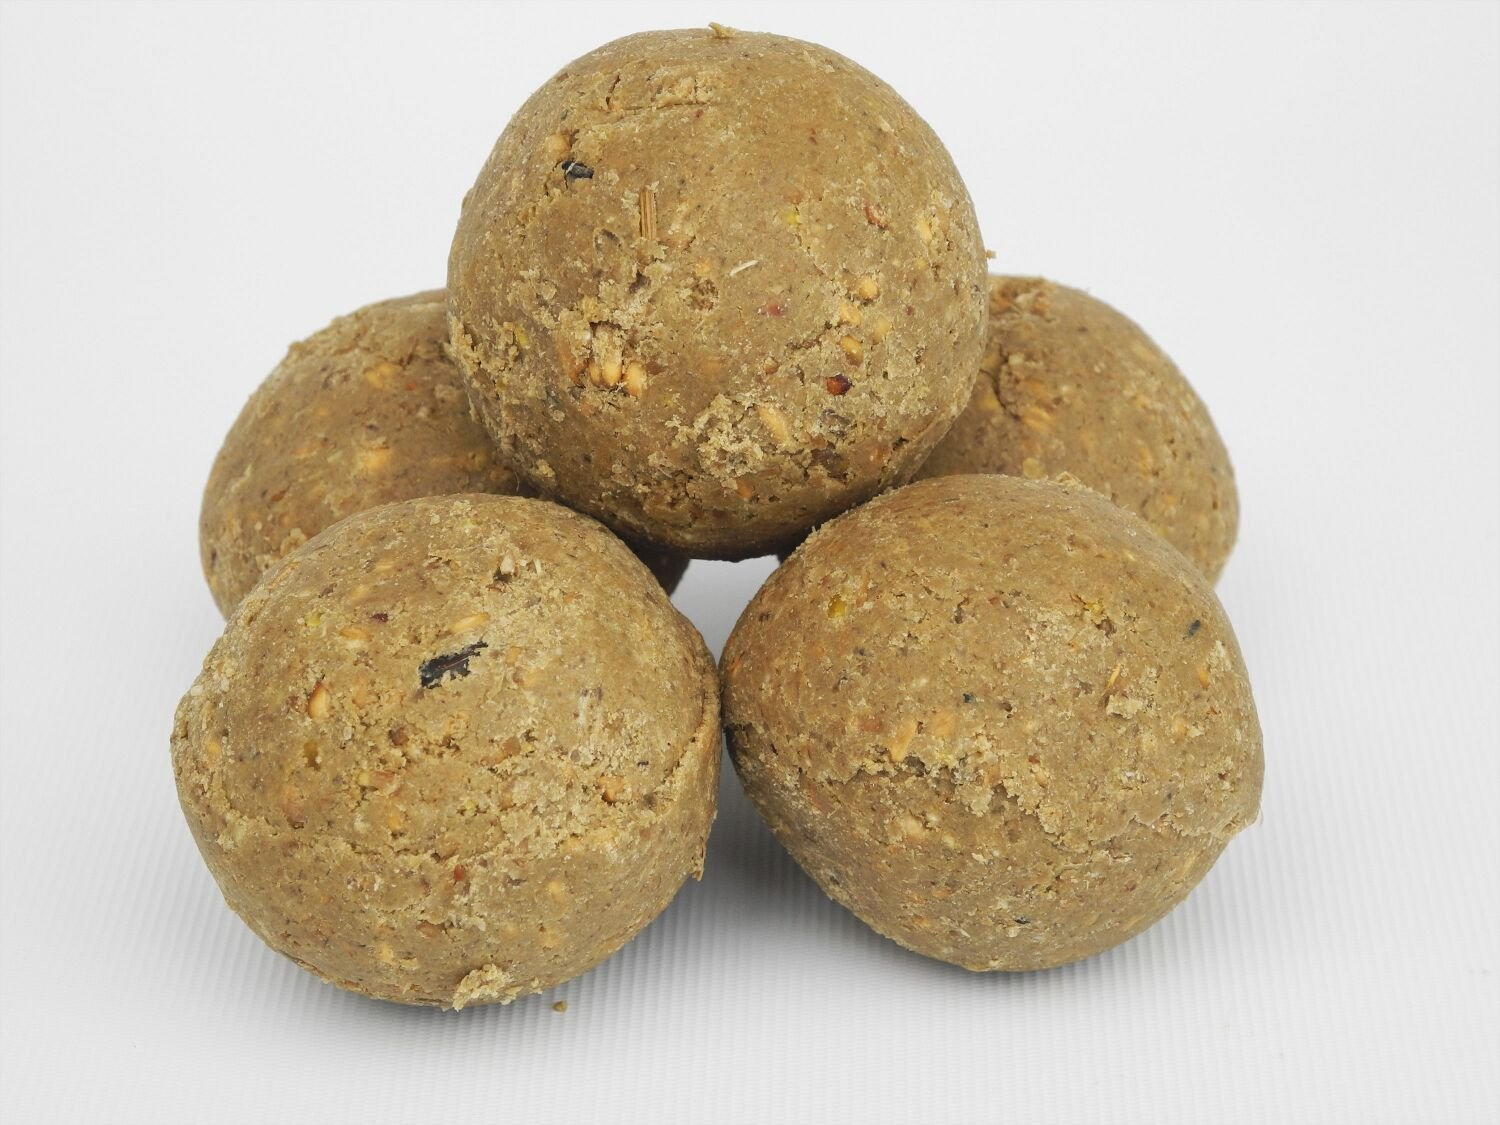 Dawn Chorus Boules de graisse sans filet, 12,55 kg, env. 150 pièces THE_GARDENERS_MARKET ball003